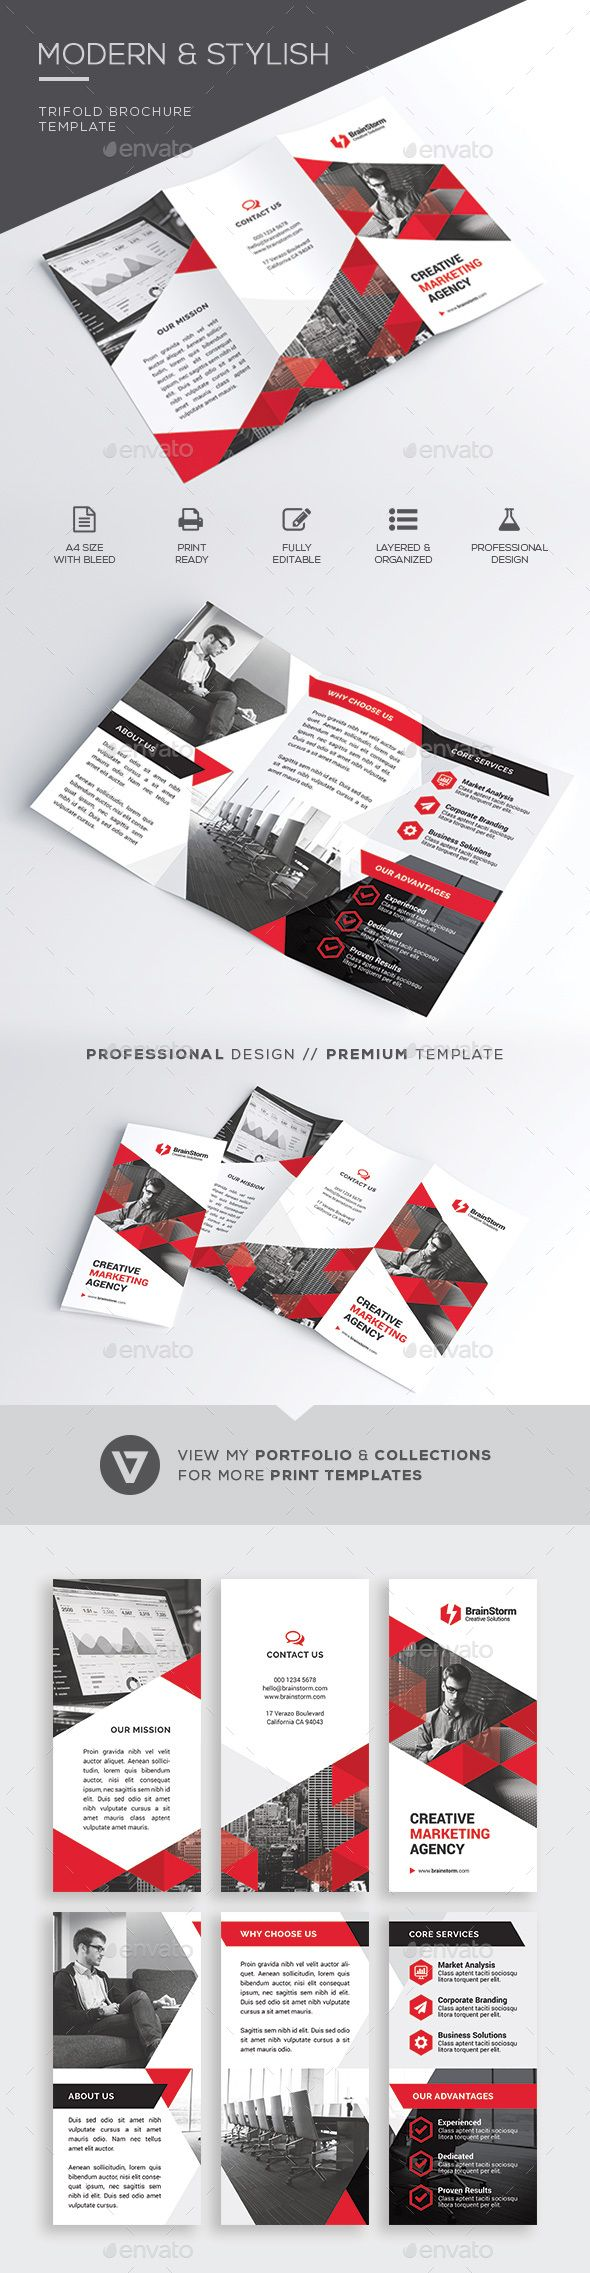 Trifold Brochure — Photoshop PSD #creative #marketing • Available here → https://graphicriver.net/item/trifold-brochure/20977463?ref=pxcr